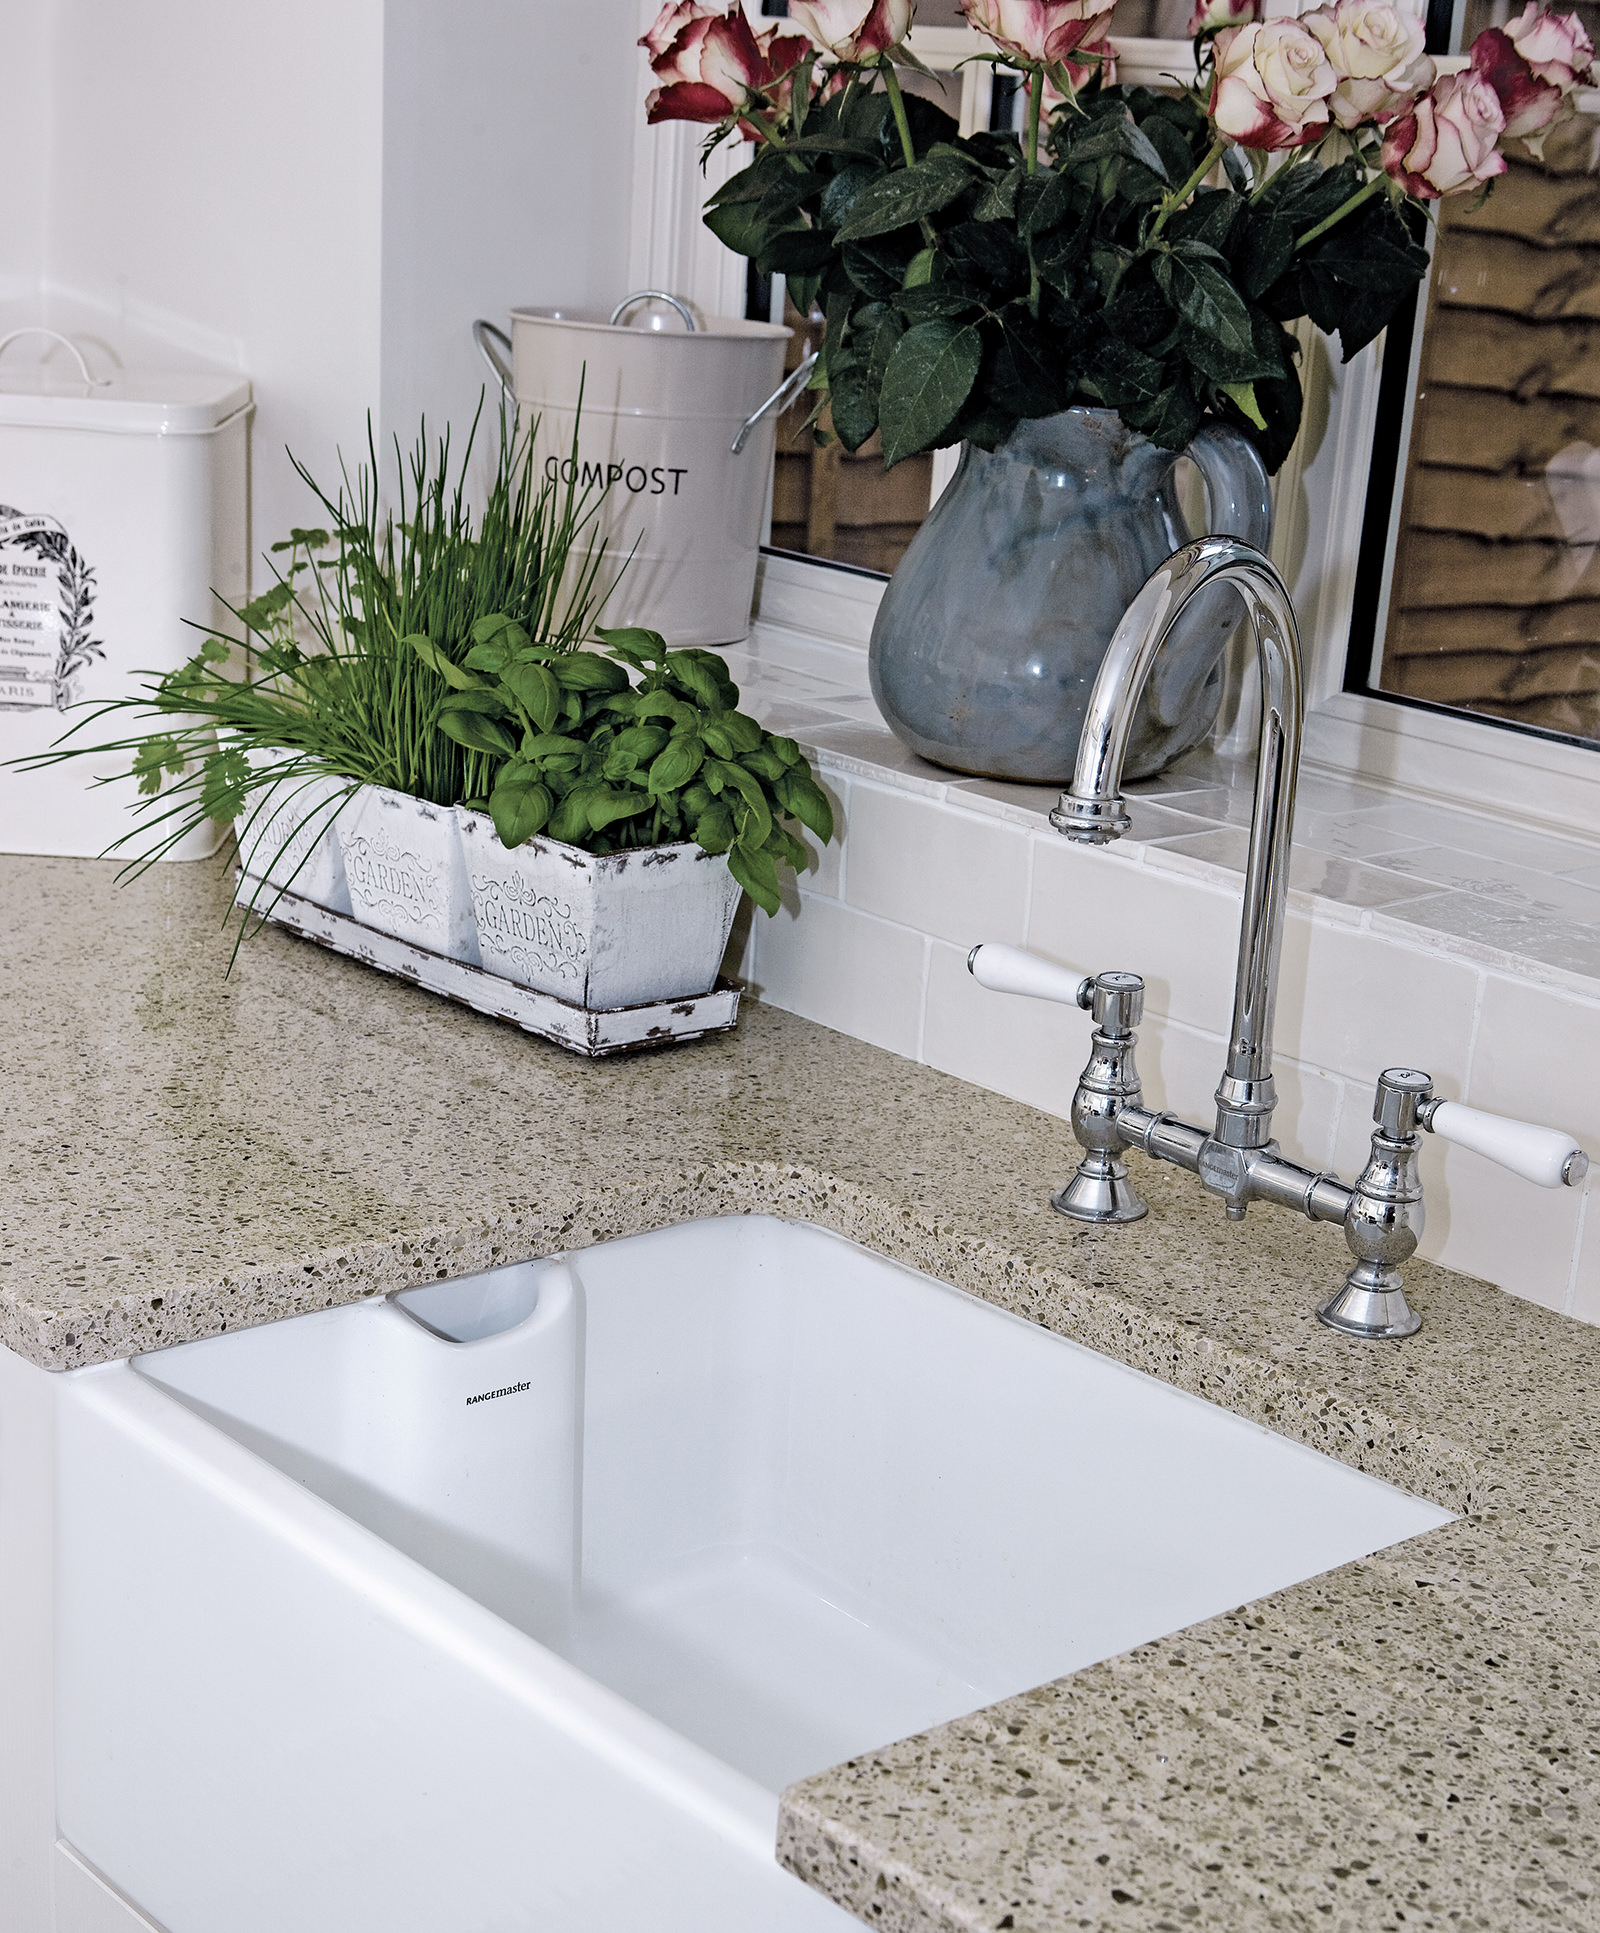 Rangemaster Kitchen Sinks Rangemaster belfast traditional bridge kitchen sink mixer tap workwithnaturefo